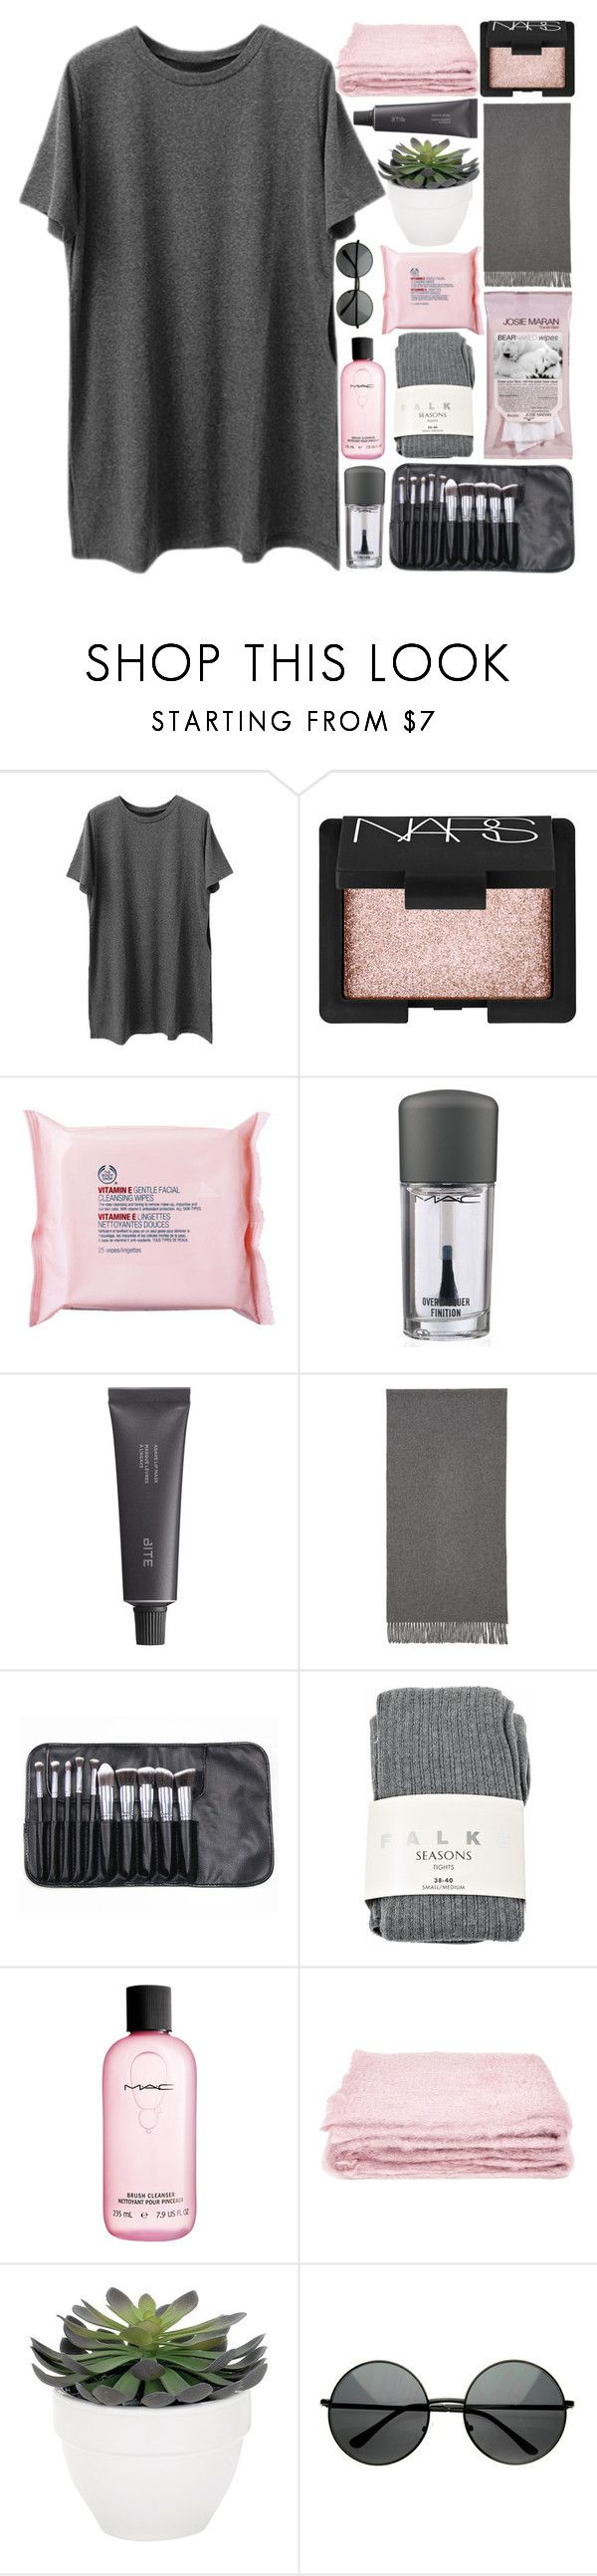 """""""-changing boxes-"""" by h-eartstrings ❤ liked on Polyvore featuring NARS Cosmetics, The Body Shop, MAC Cosmetics, Bite, Acne Studios, Falke, abcDNA, Torre & Tagus, MLC Eyewear and ThisIsNotADrill"""